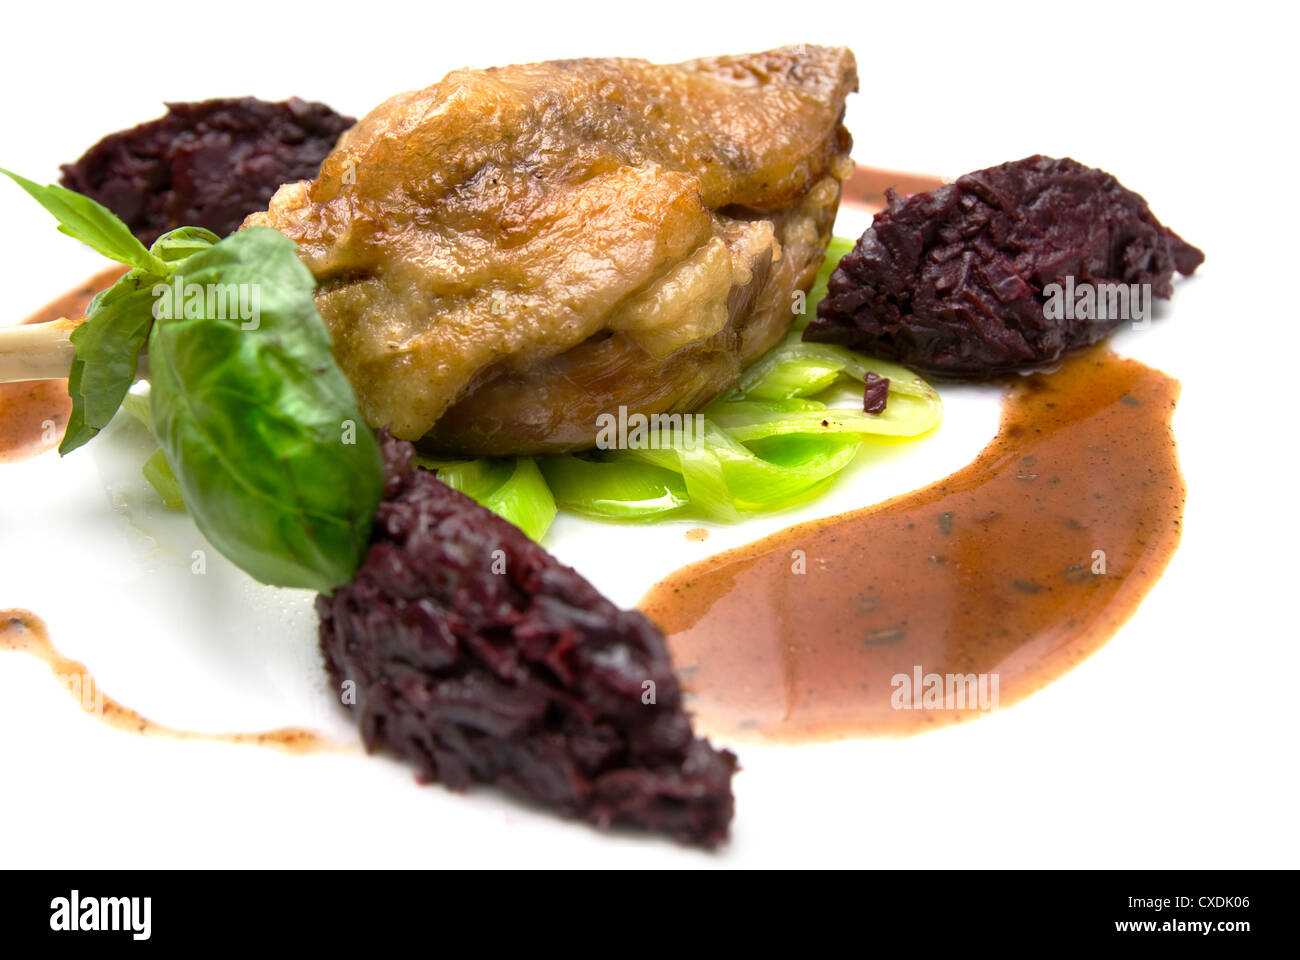 fried chicken isolated on white - Stock Image